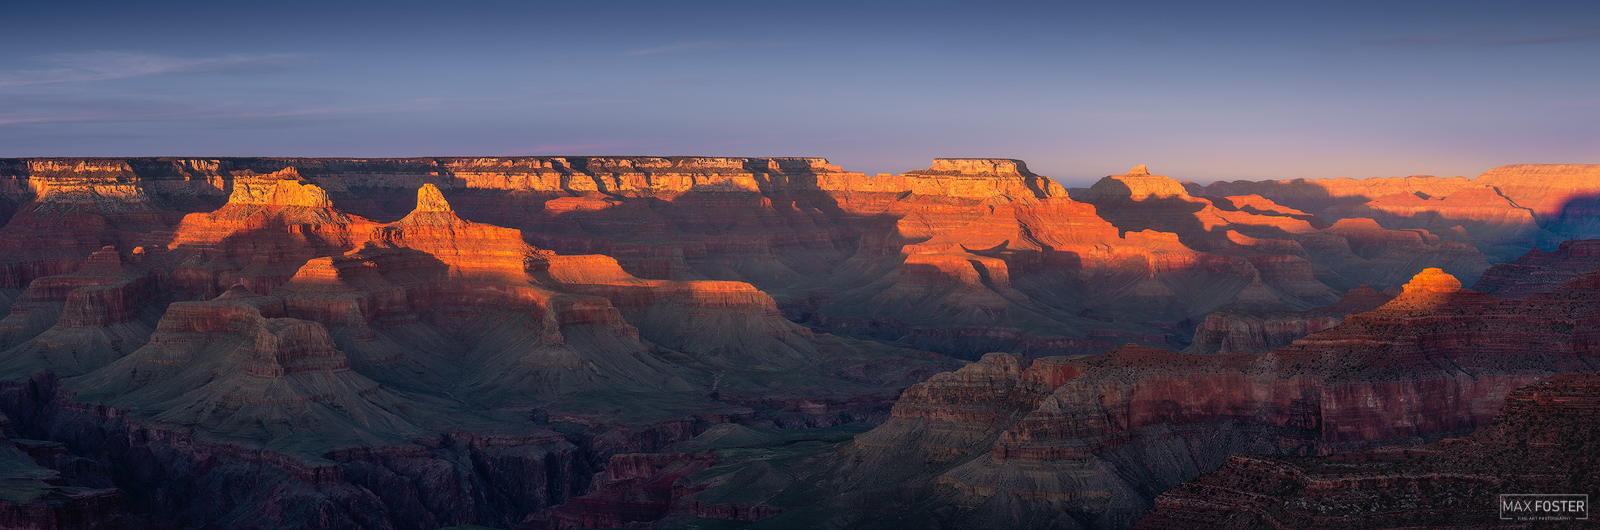 Fine Art Limited Edition of 50 The Grand Canyon, including its extensive system of tributary canyons, is valued for its combination...